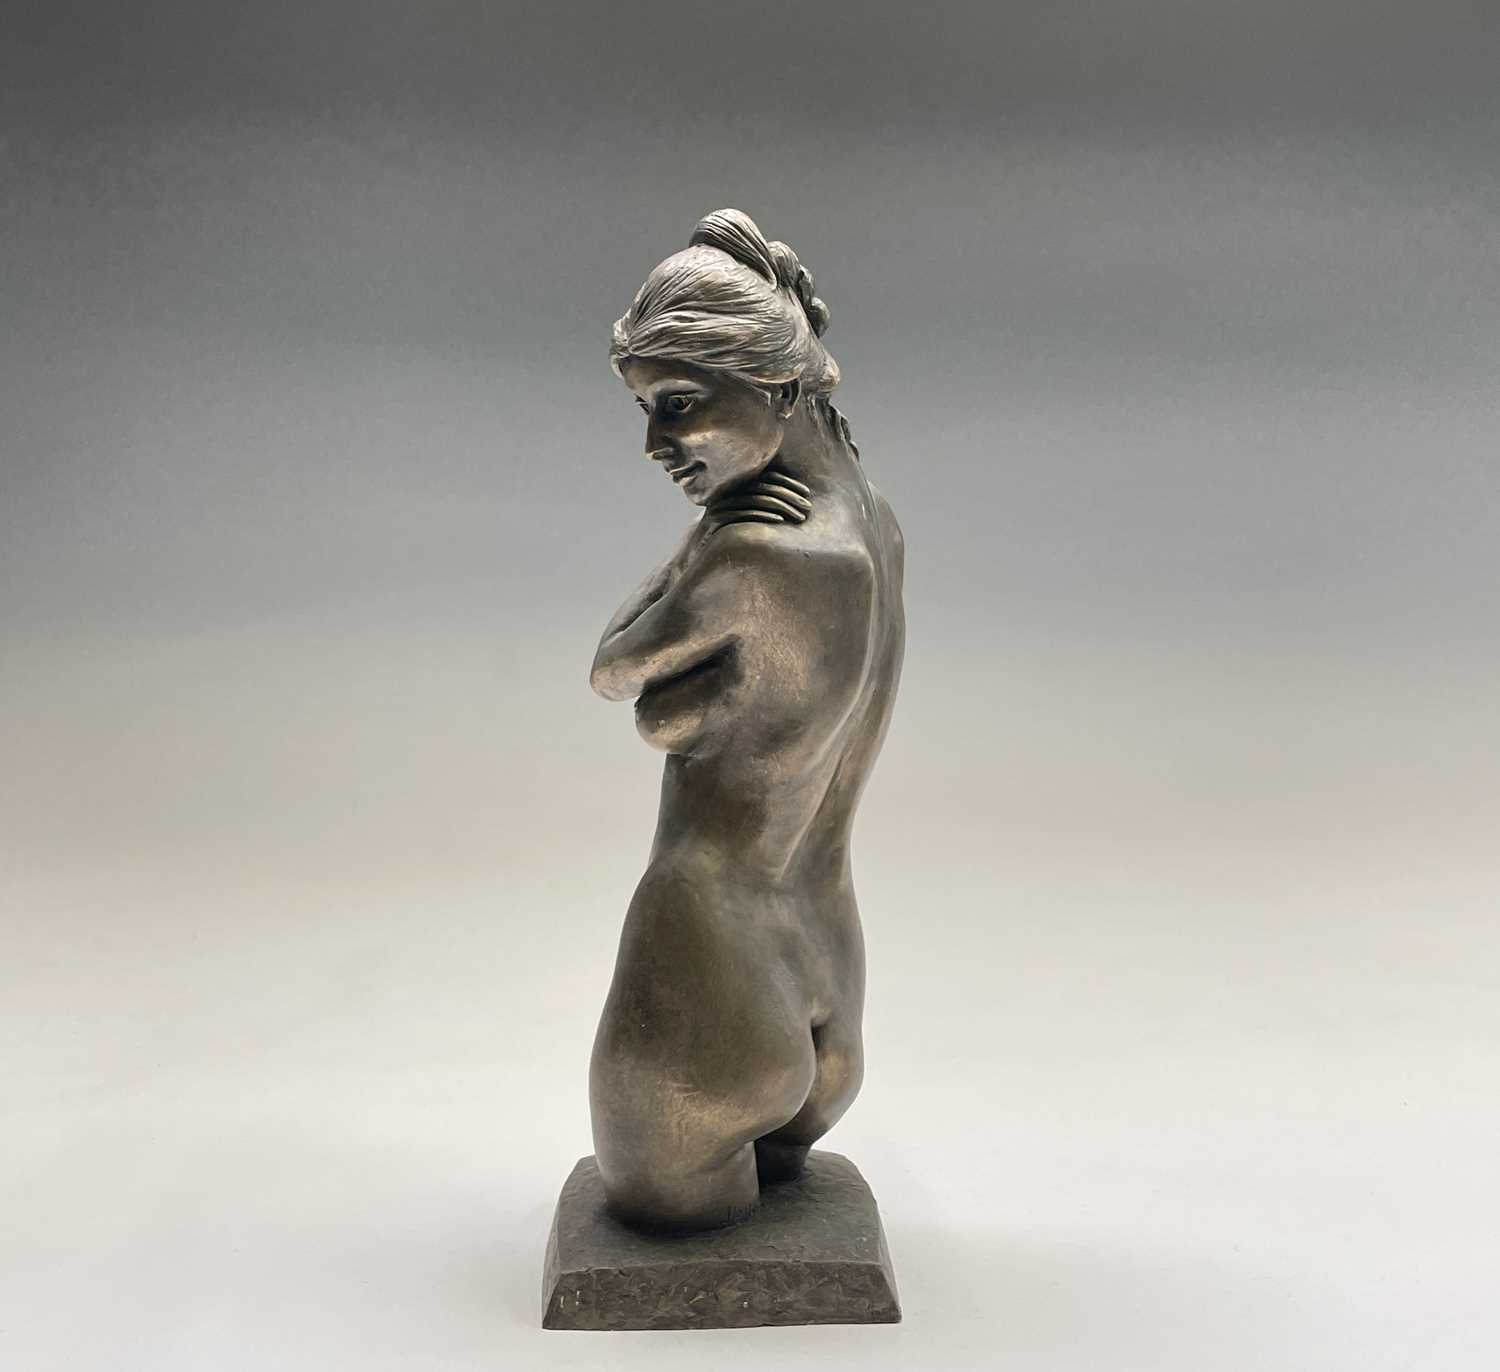 Alec WILES (1924)Female Form Bronzed resin sculpture Signed Height 36.5cm - Image 4 of 11